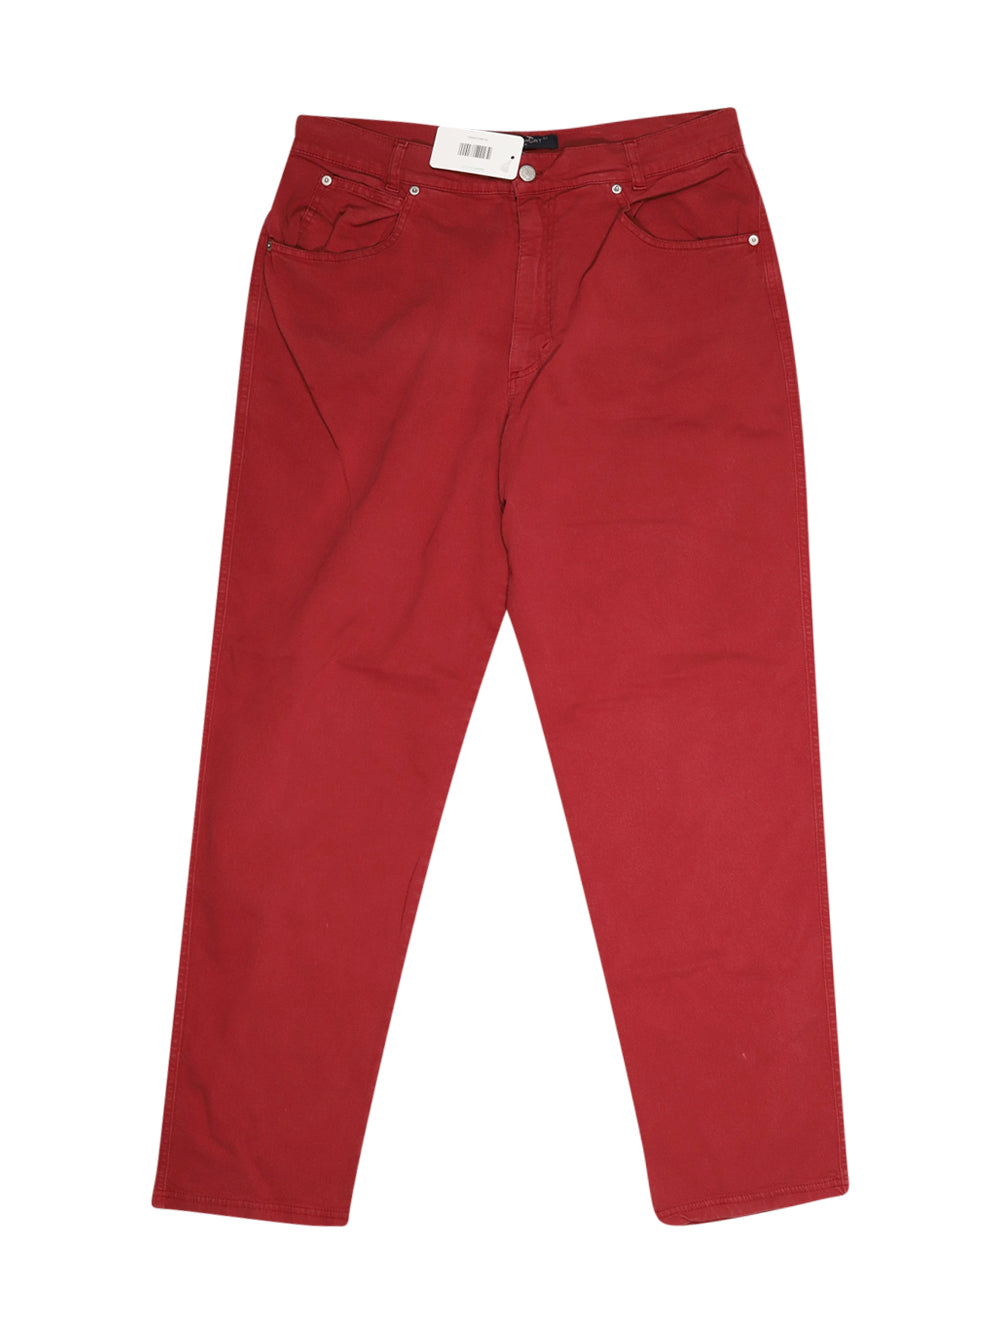 Front photo of Preloved marinasport Bordeaux Man's trousers - size 40/L